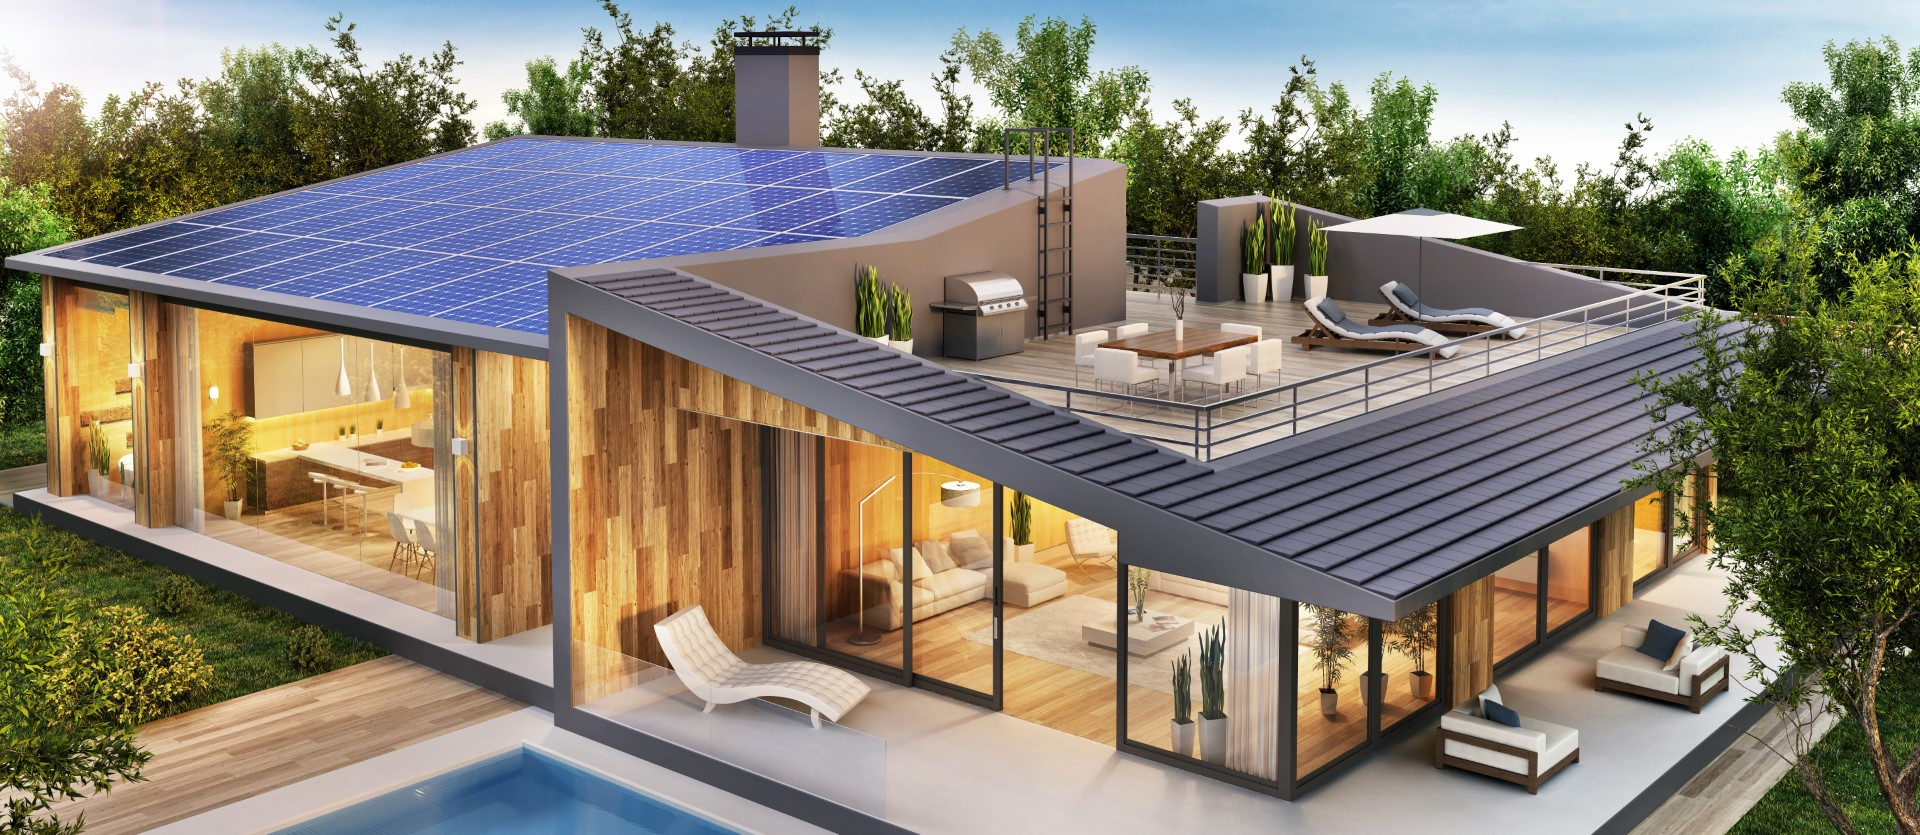 Eco Friendly Sustainable Home Design